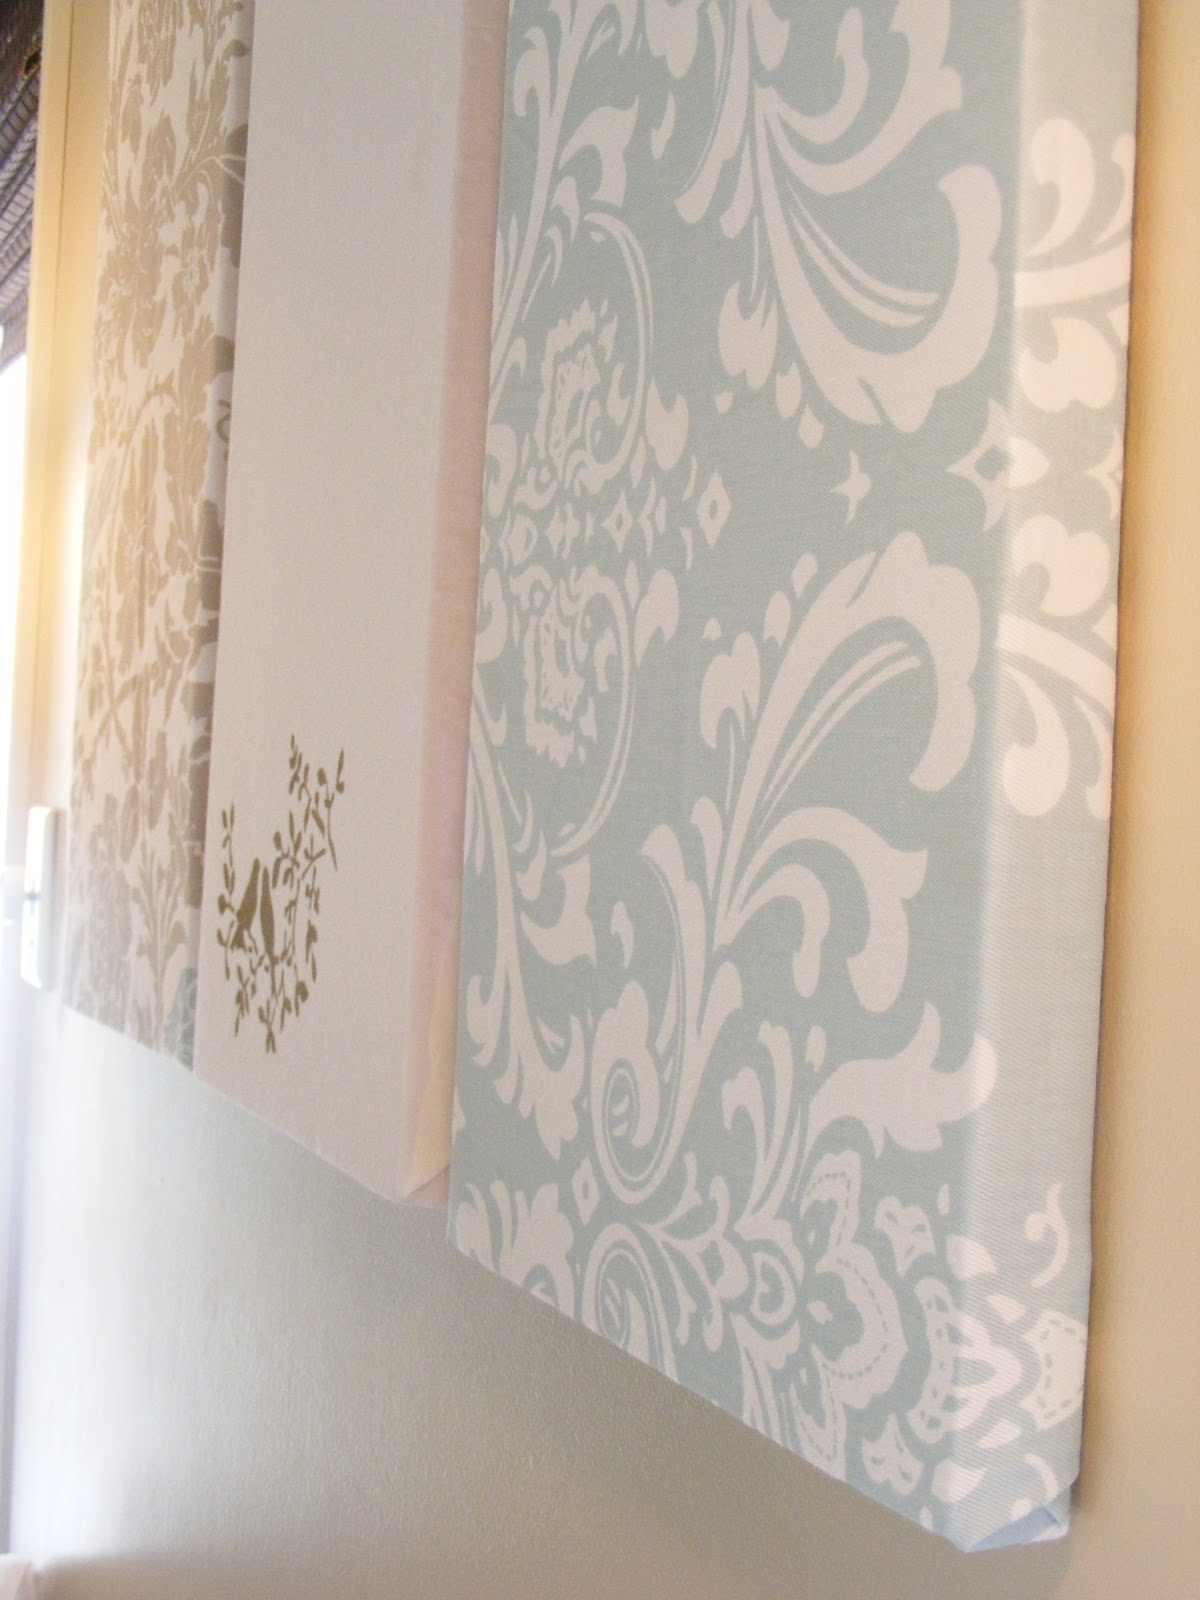 The Complete Guide To Imperfect Homemaking: Simple, Thrifty Diy Art Intended For Newest Damask Fabric Wall Art (View 14 of 15)